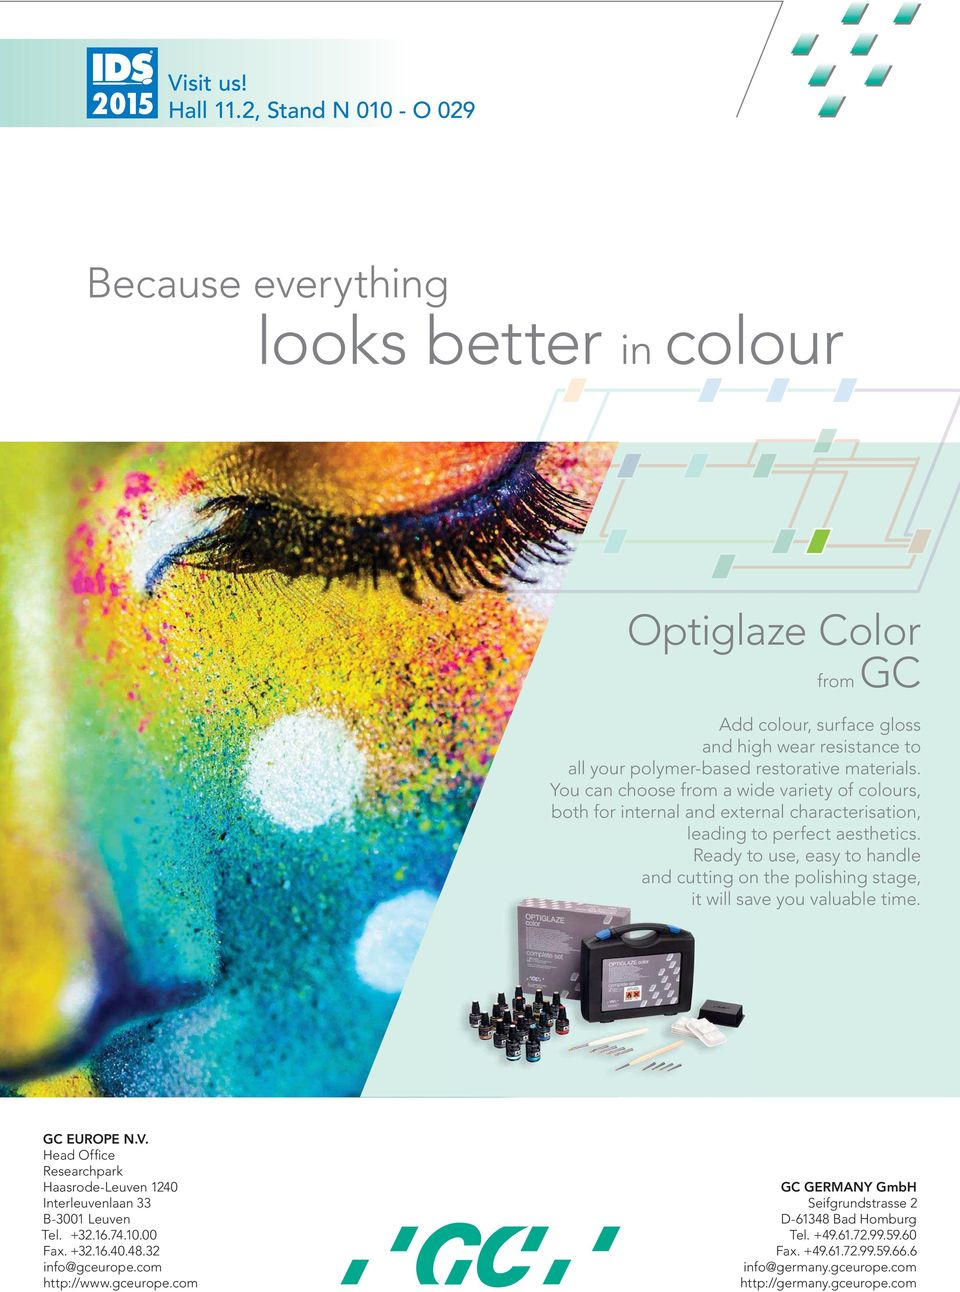 You can choose from a wide variety of colours, both for internal and external characterisation, leading to perfect aesthetics.